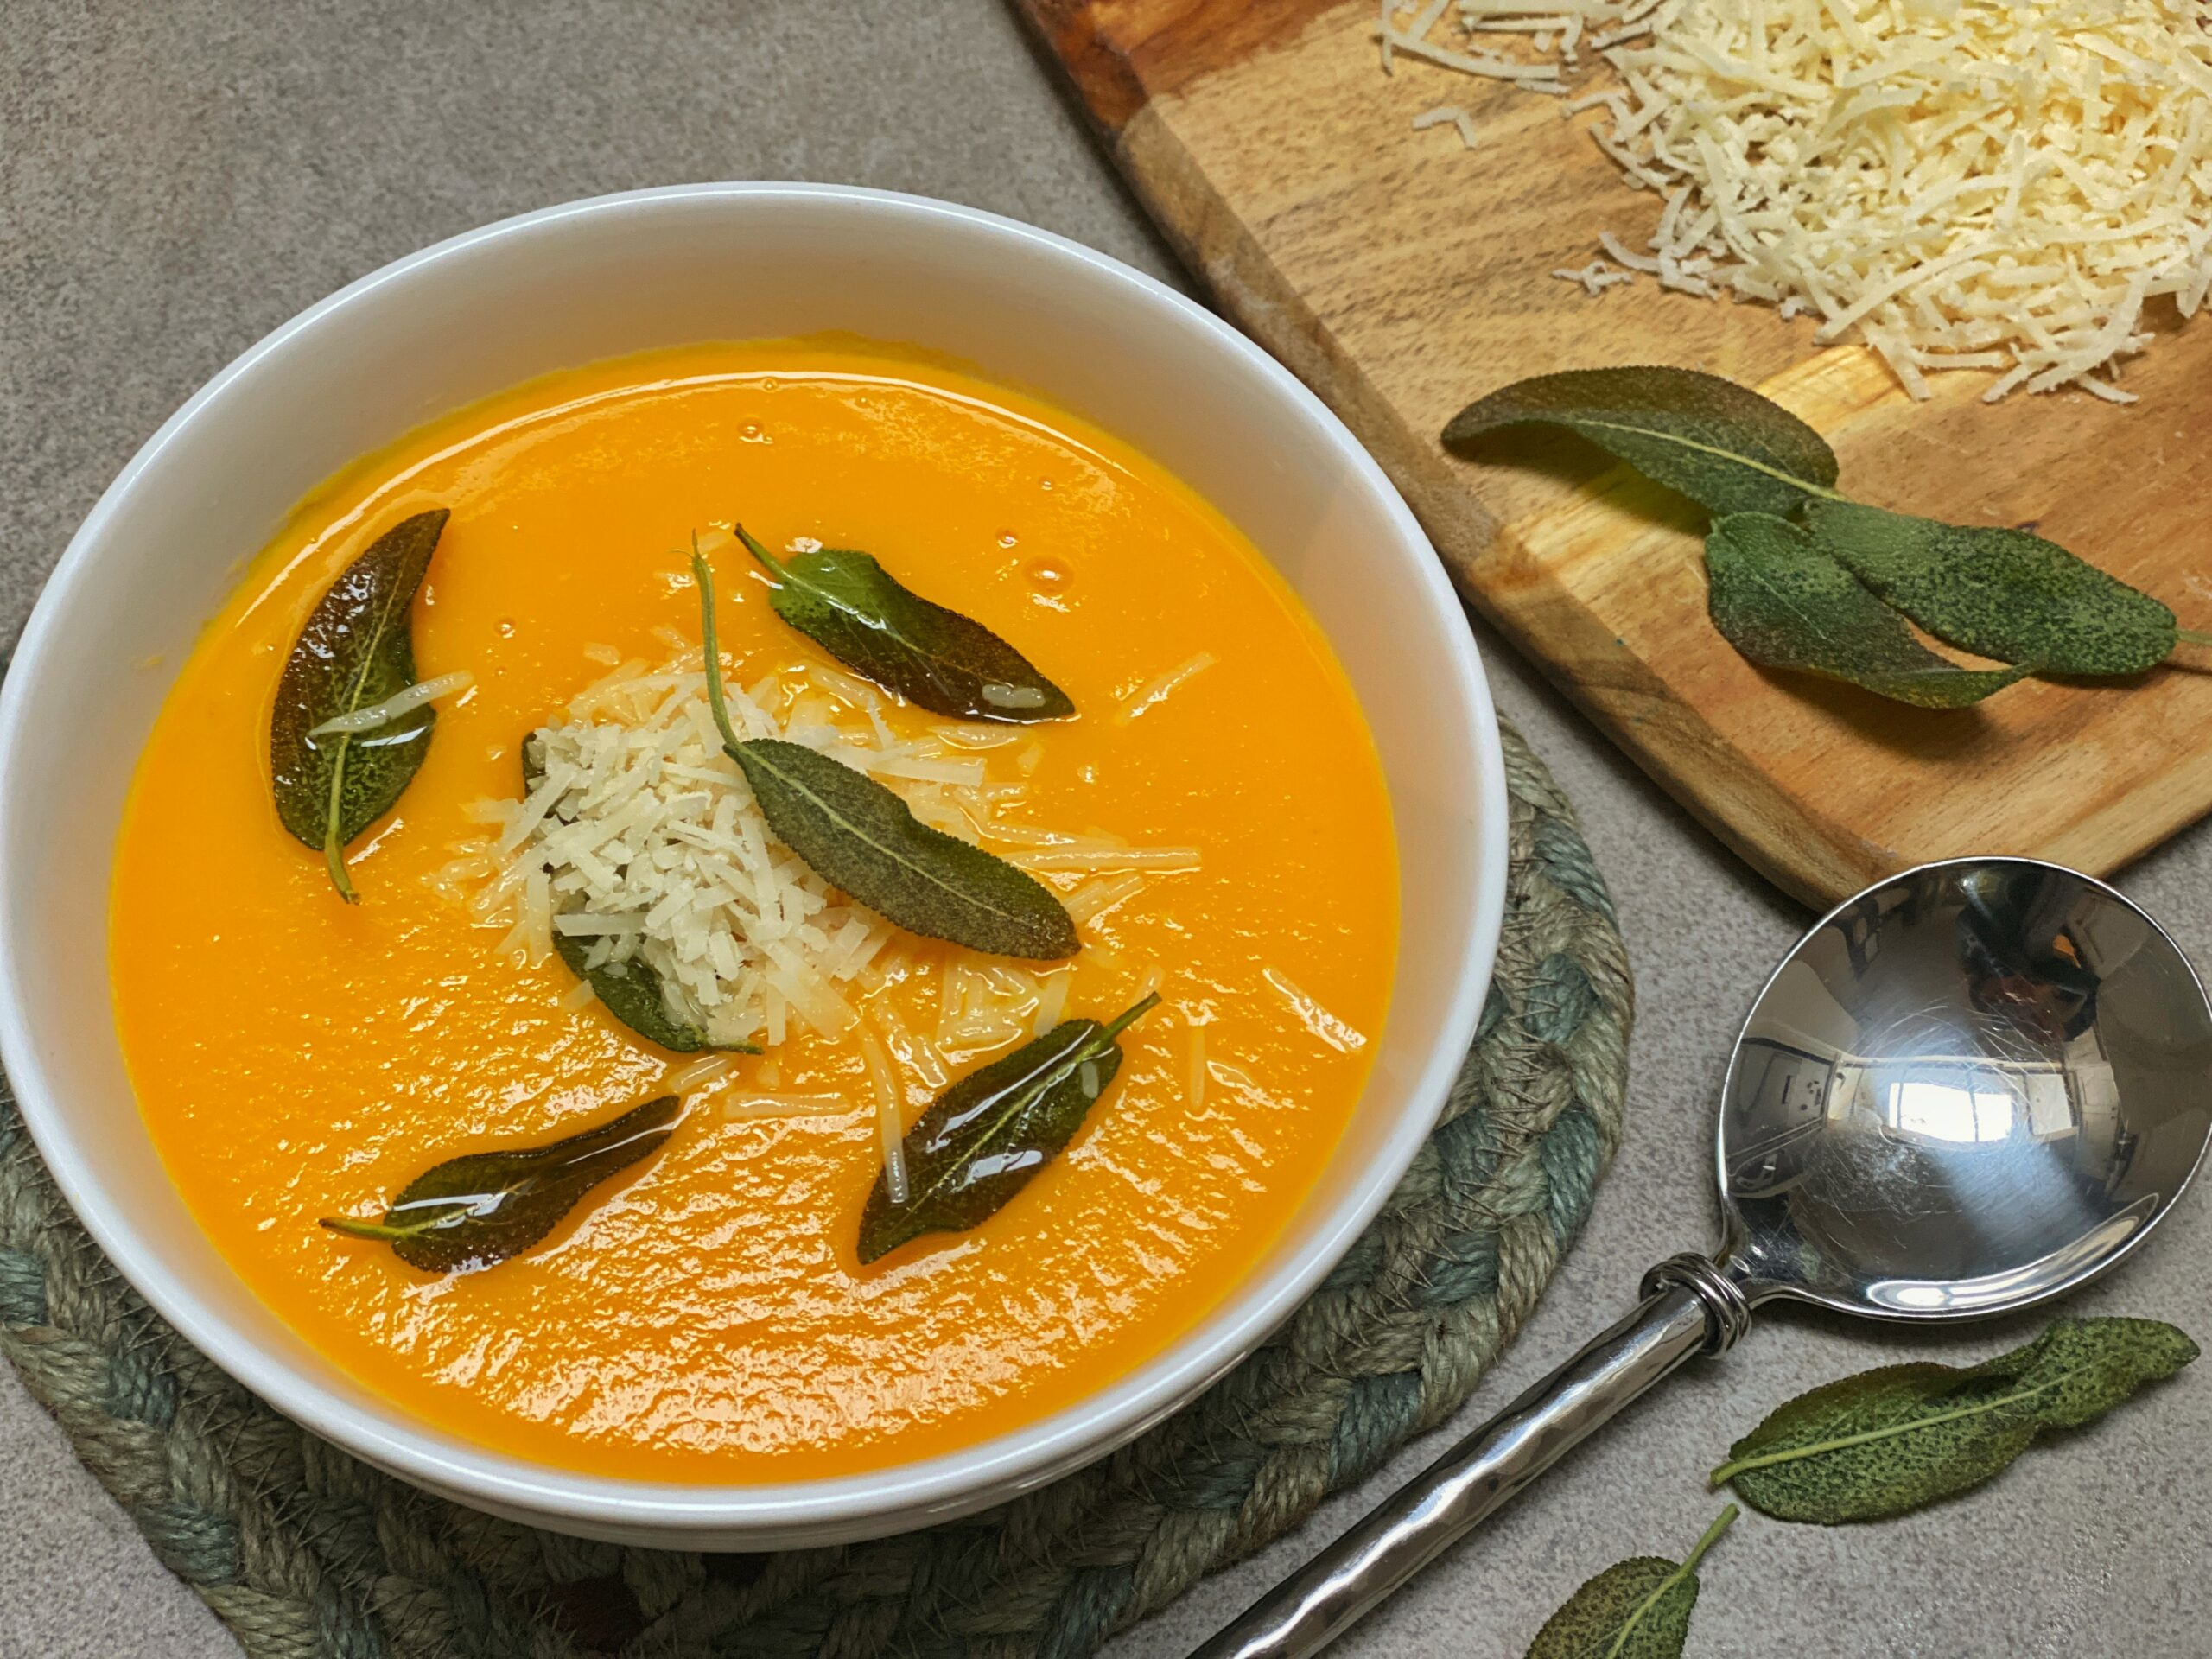 Healthy Eating Habits: Silky smooth pumpkin soup with crispy sage leaves